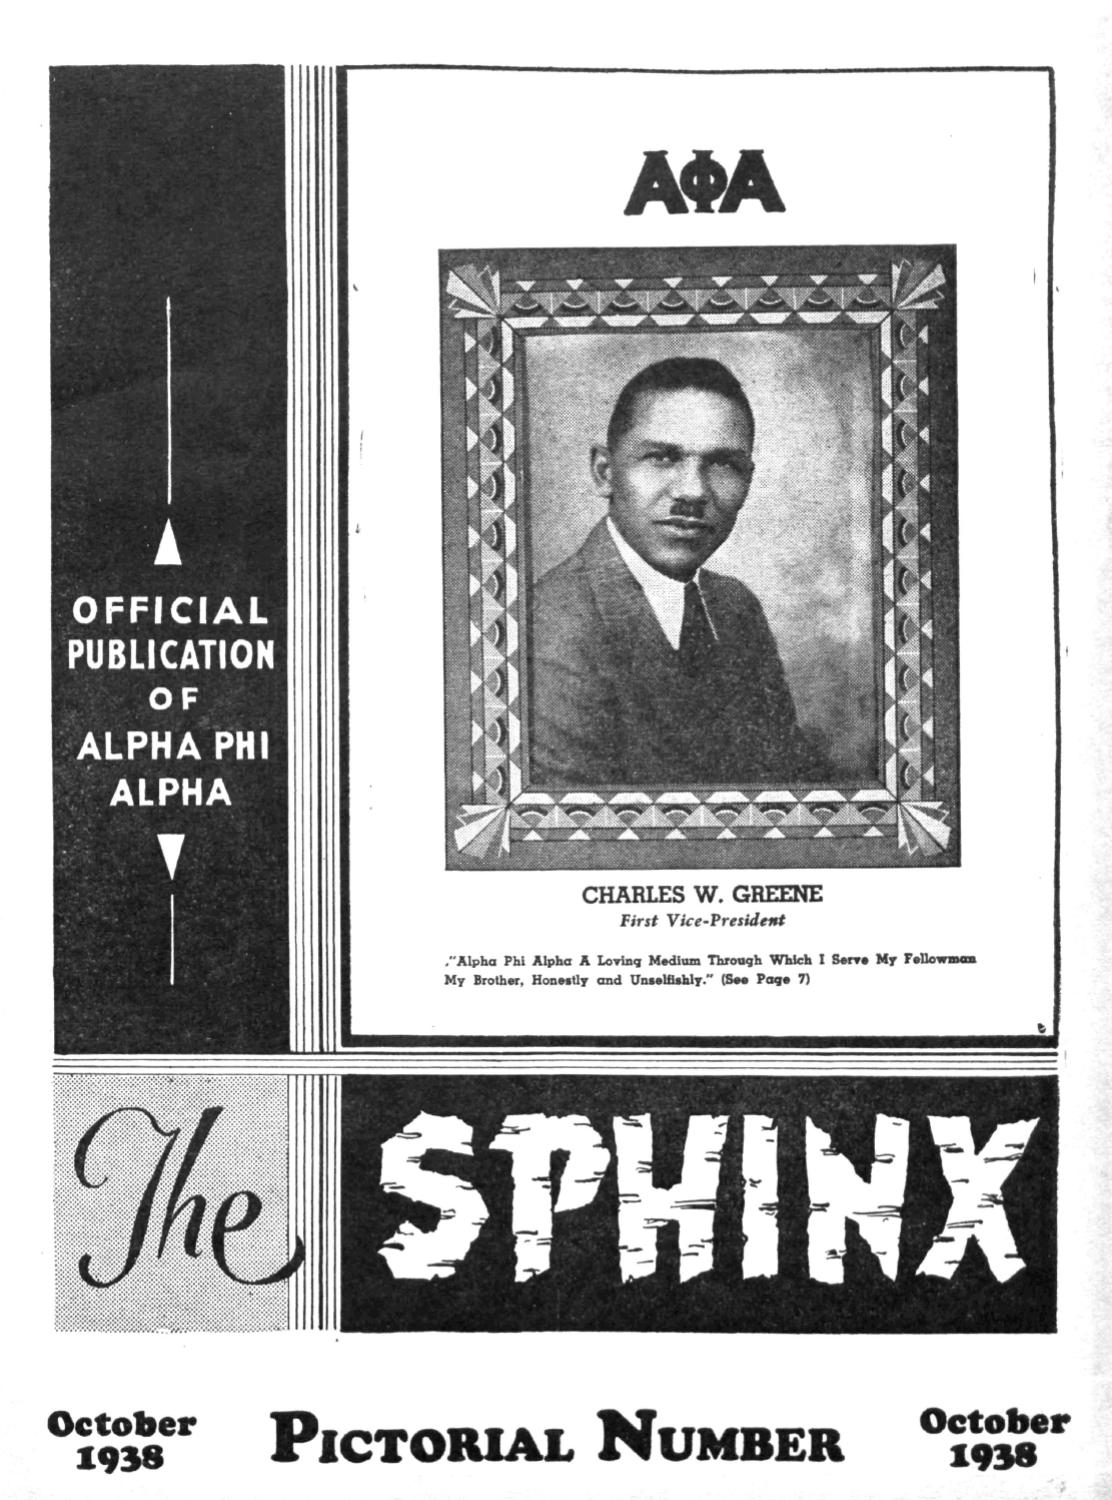 �yi%�o9�.y�NY�r��n���_TheSPHINX|FallOctober1938|Volume24|Number3193802403byAlphaPhiAlpha